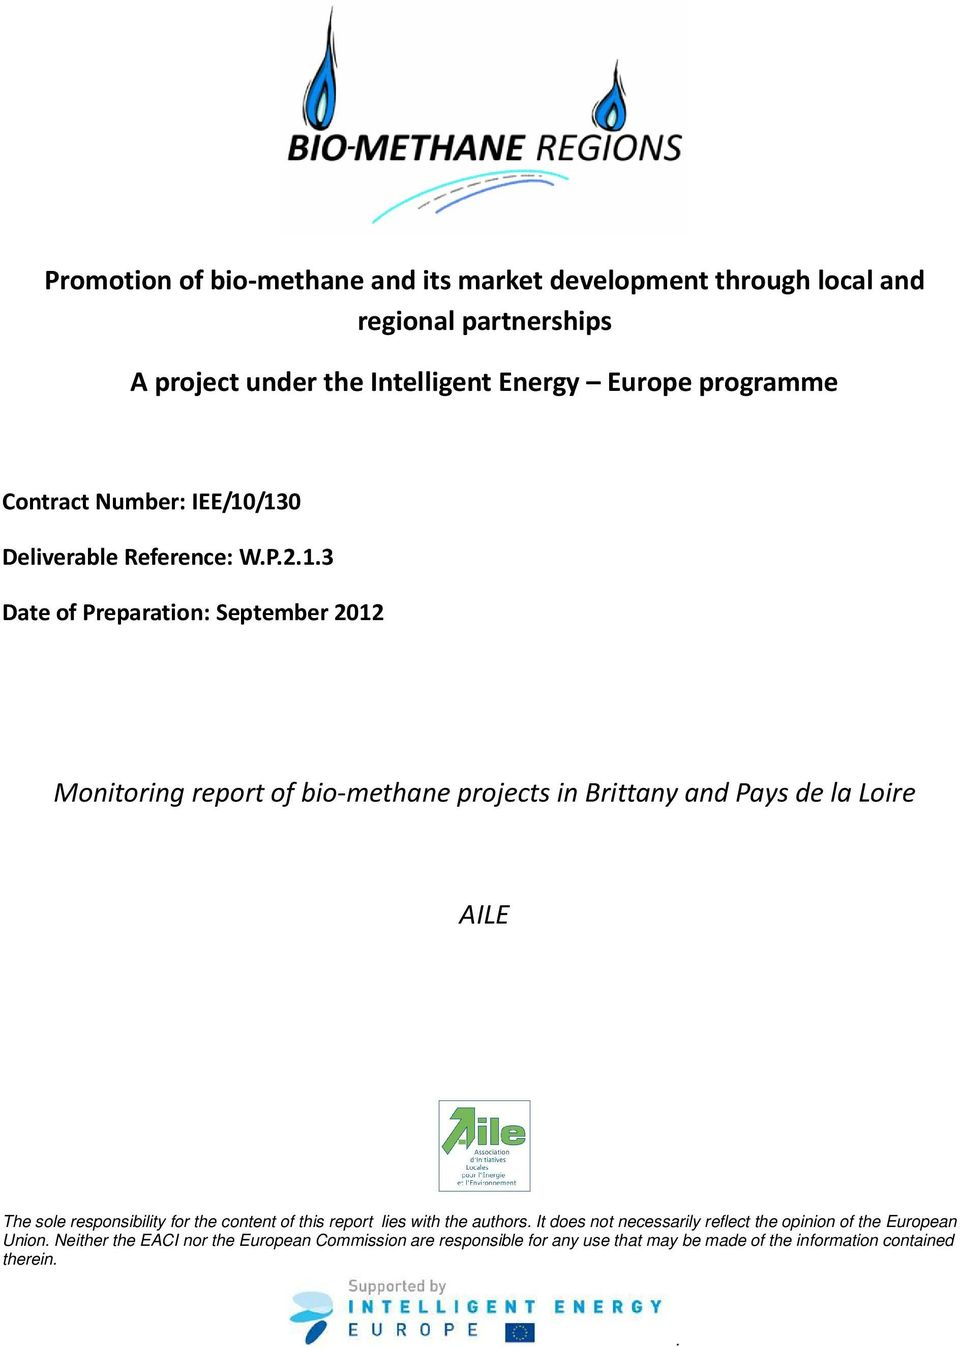 /130 Deliverable Reference: W.P.2.1.3 Date of Preparation: September 2012 Monitoring report of bio-methane projects in Brittany and Pays de la Loire